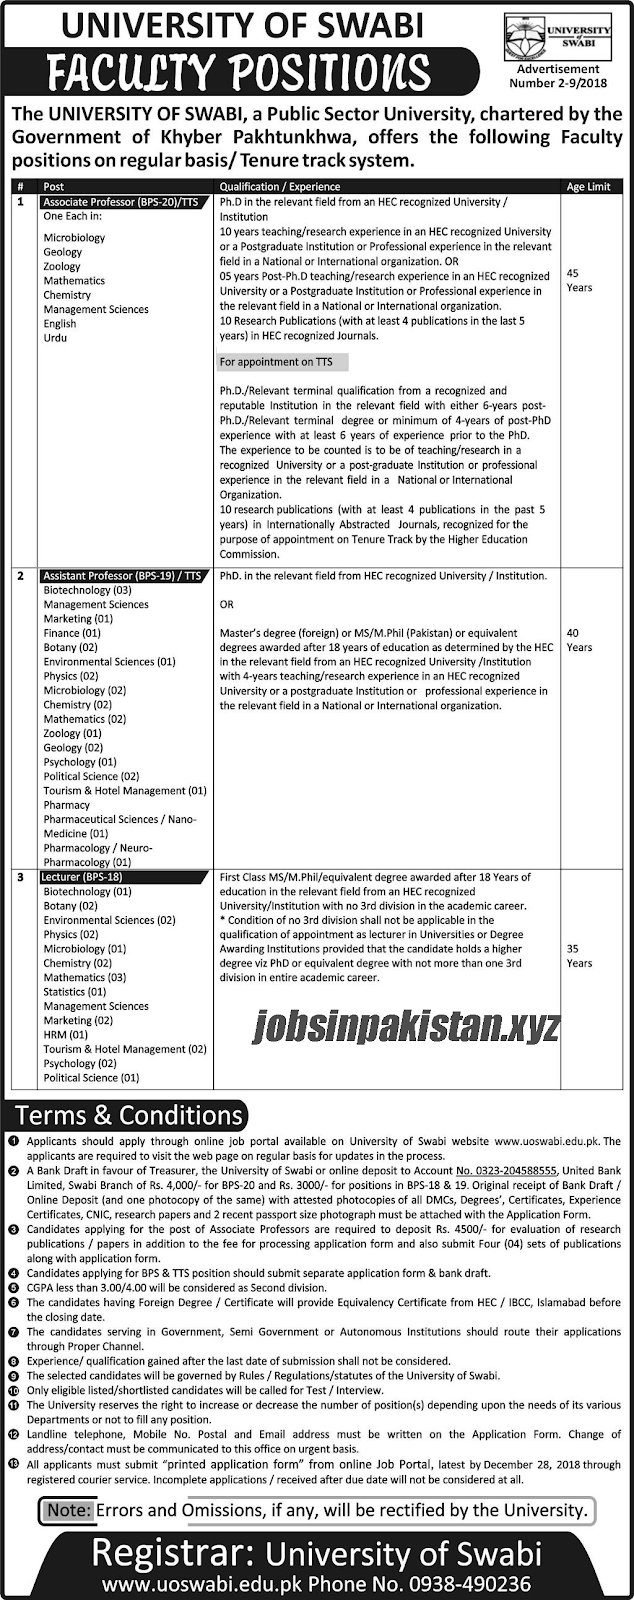 Advertisement for University of Swabi Jobs